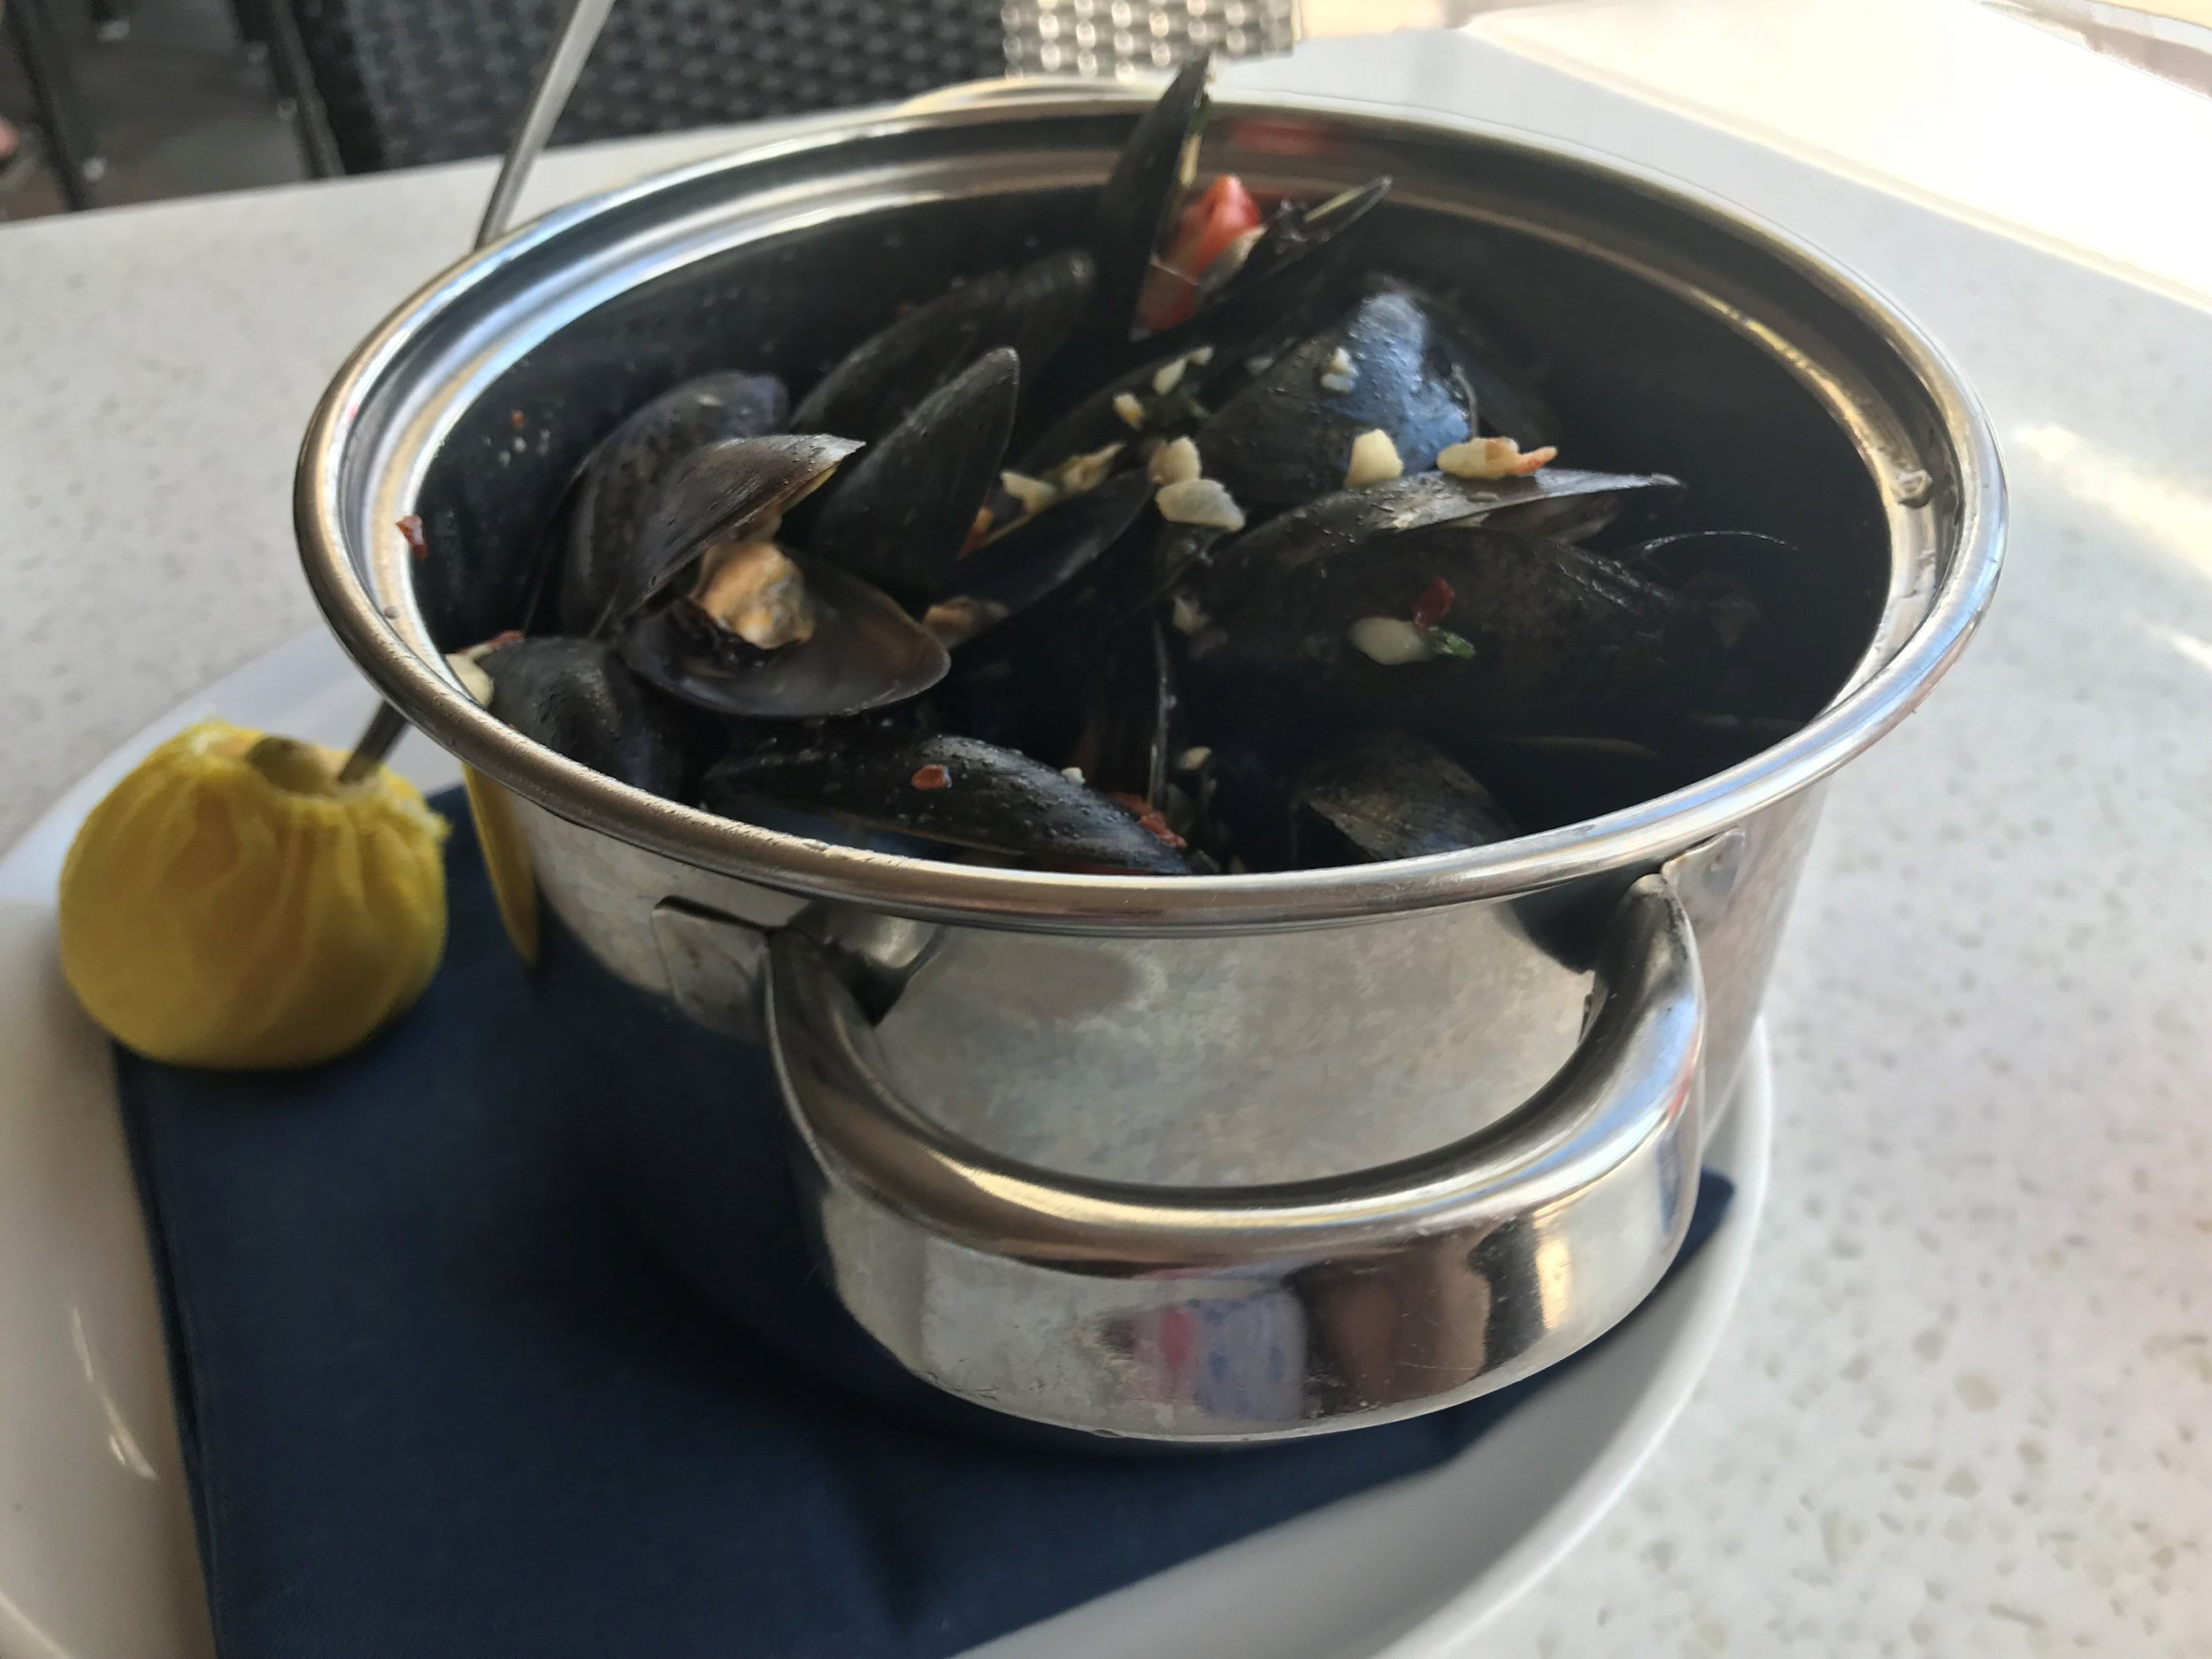 Oceans 234 Deerfield Beach Sunday Brunch Mussels